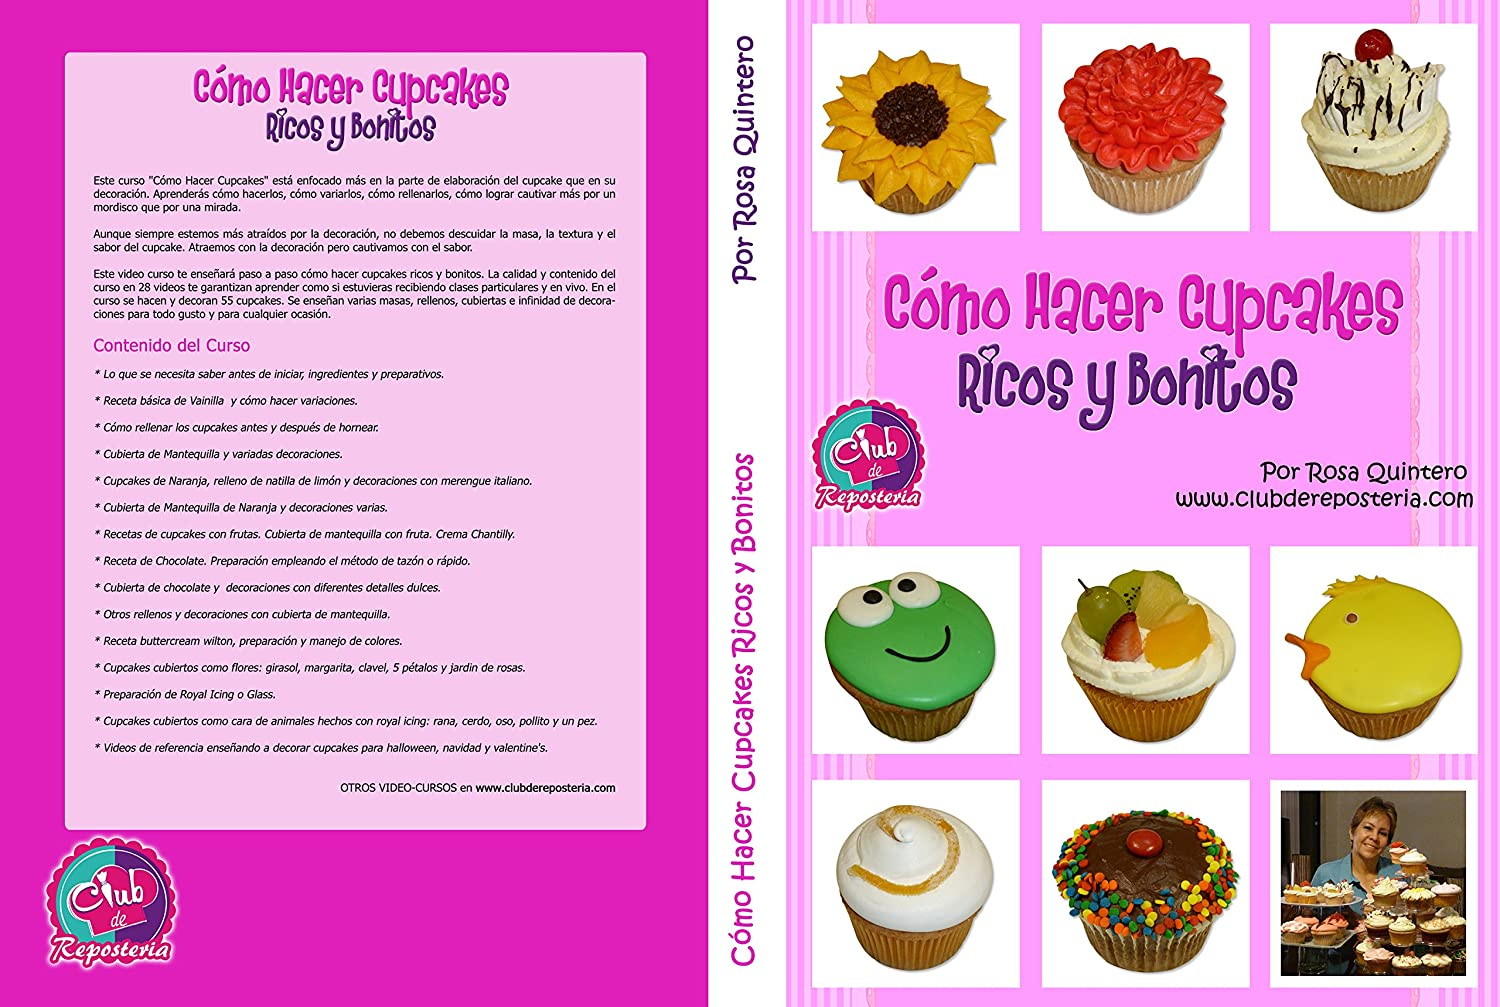 Amazon.com: Como Hacer Cupcakes - Completo Video Curso paso a paso para hacer, rellenar y decorar cupcakes: Club de Reposteria: Movies & TV